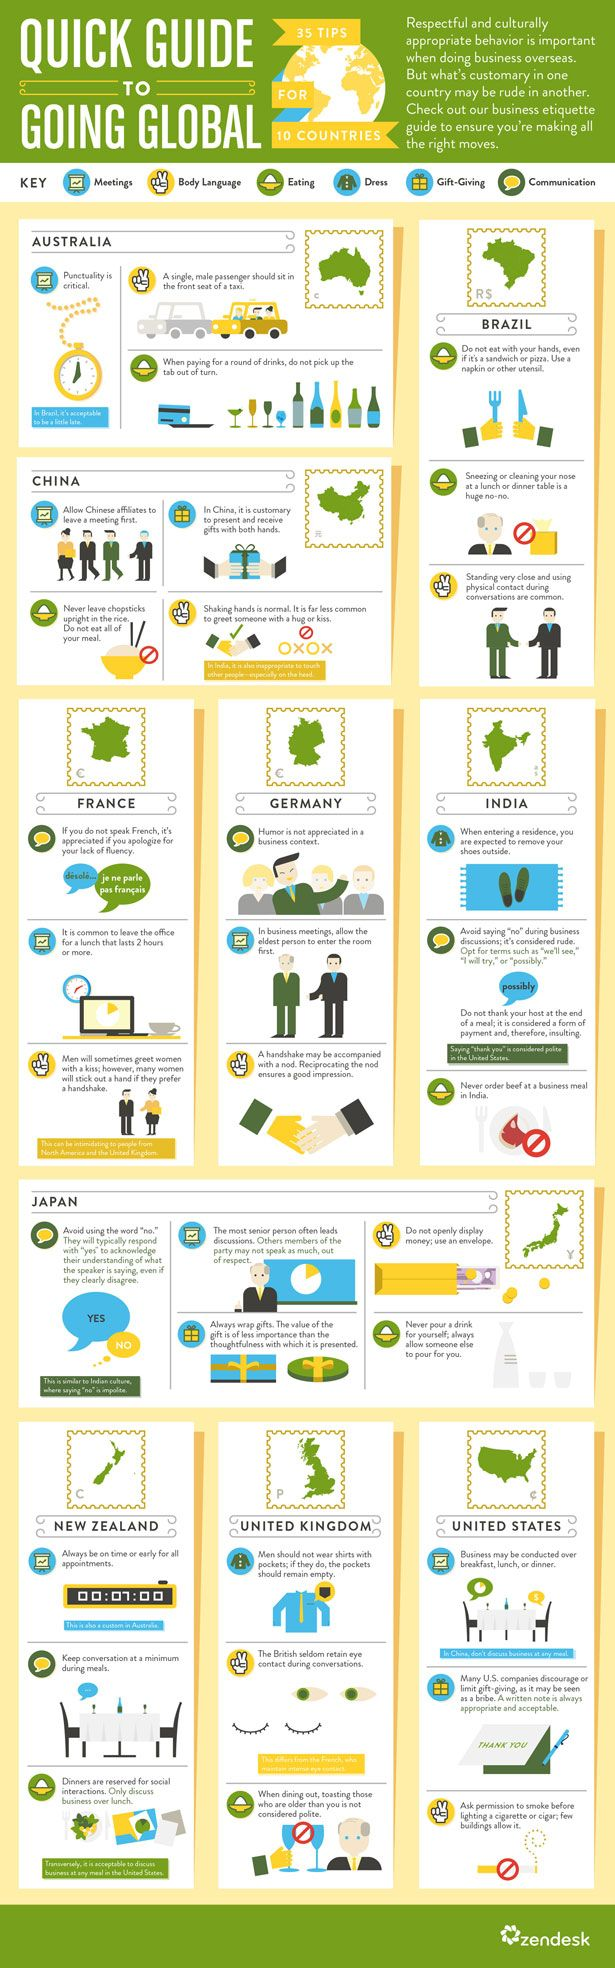 Global Business Travel Etiquette